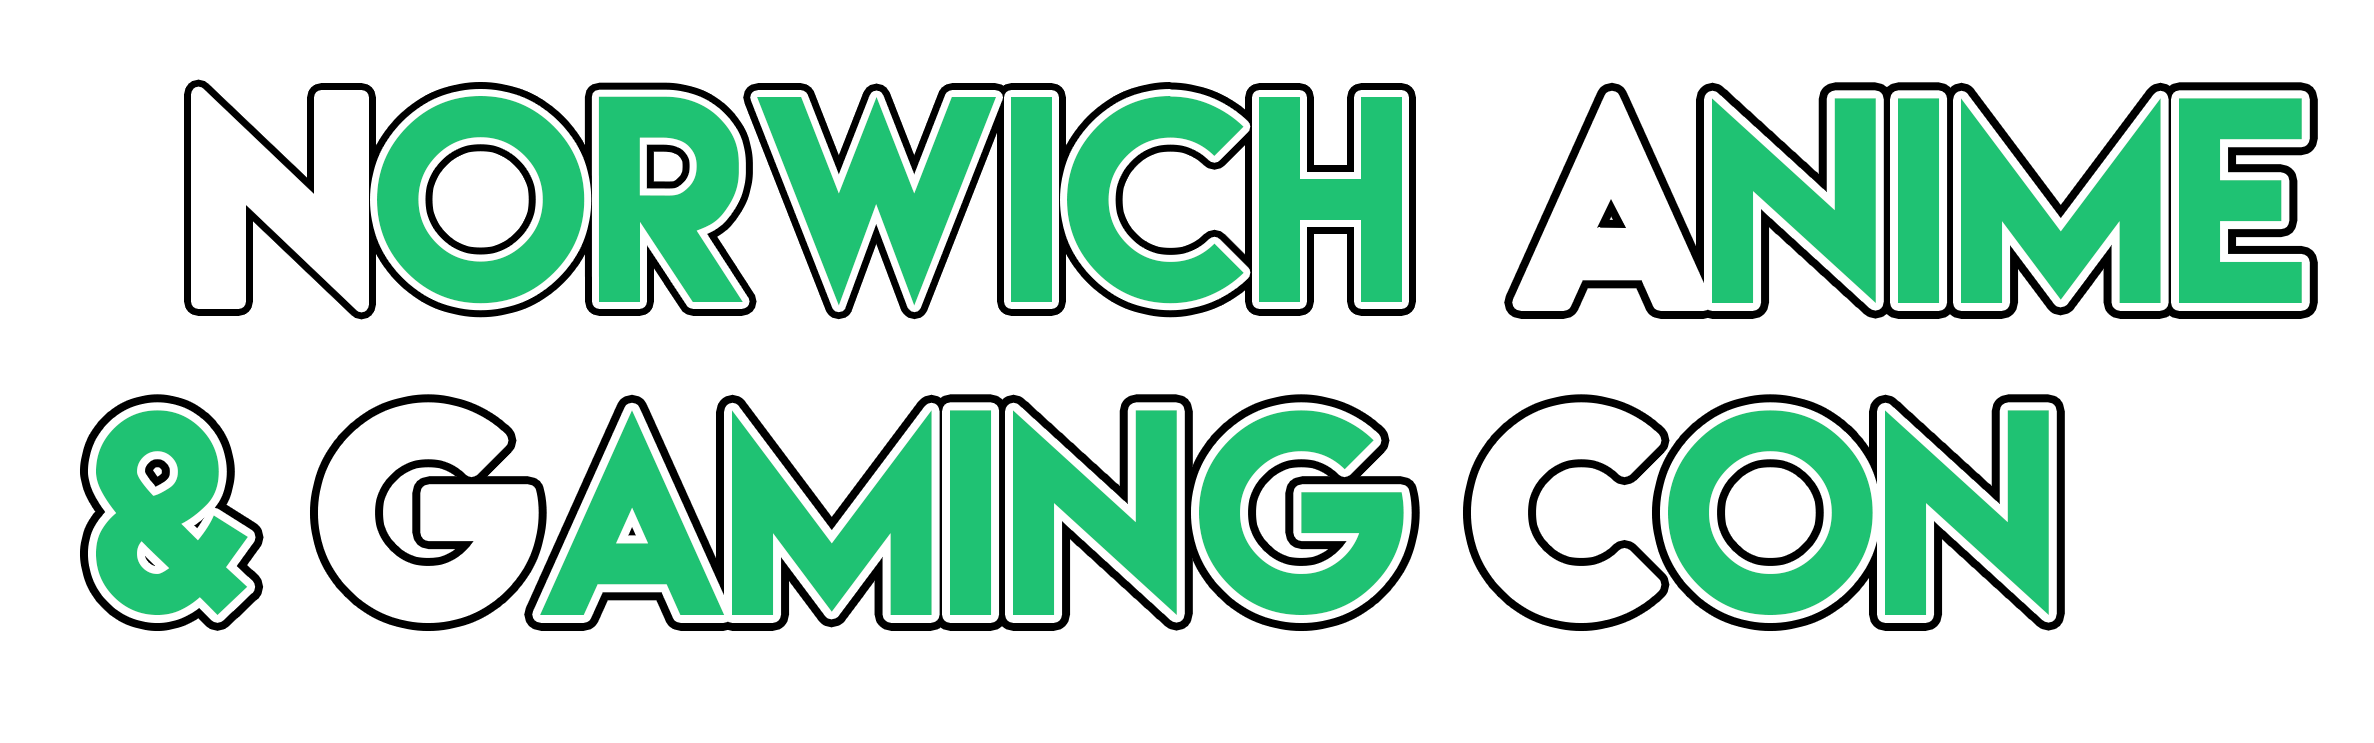 Norwich Anime & Gaming Con